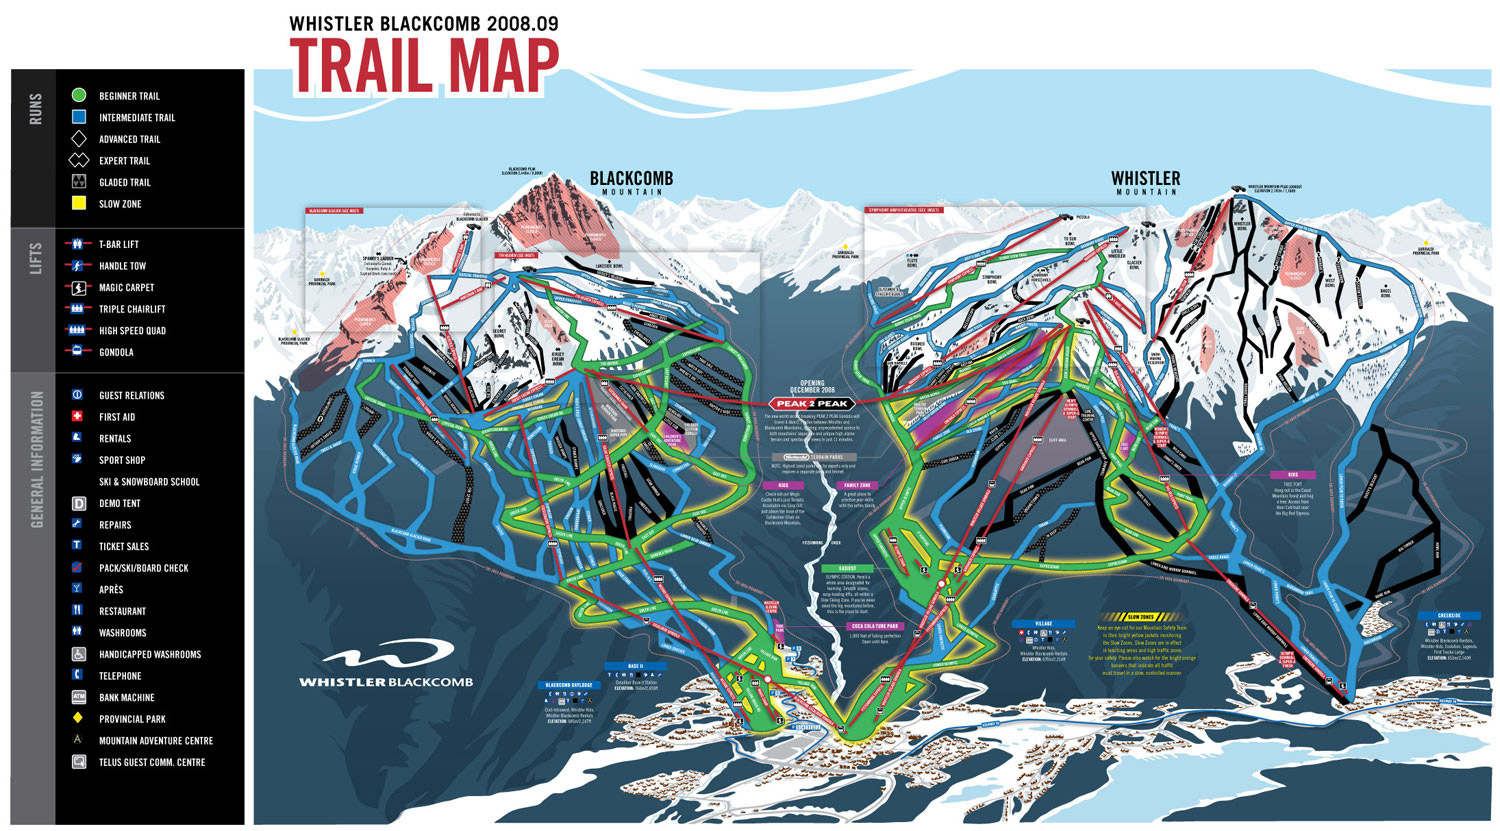 whistler/blackcomb trail map/webcams